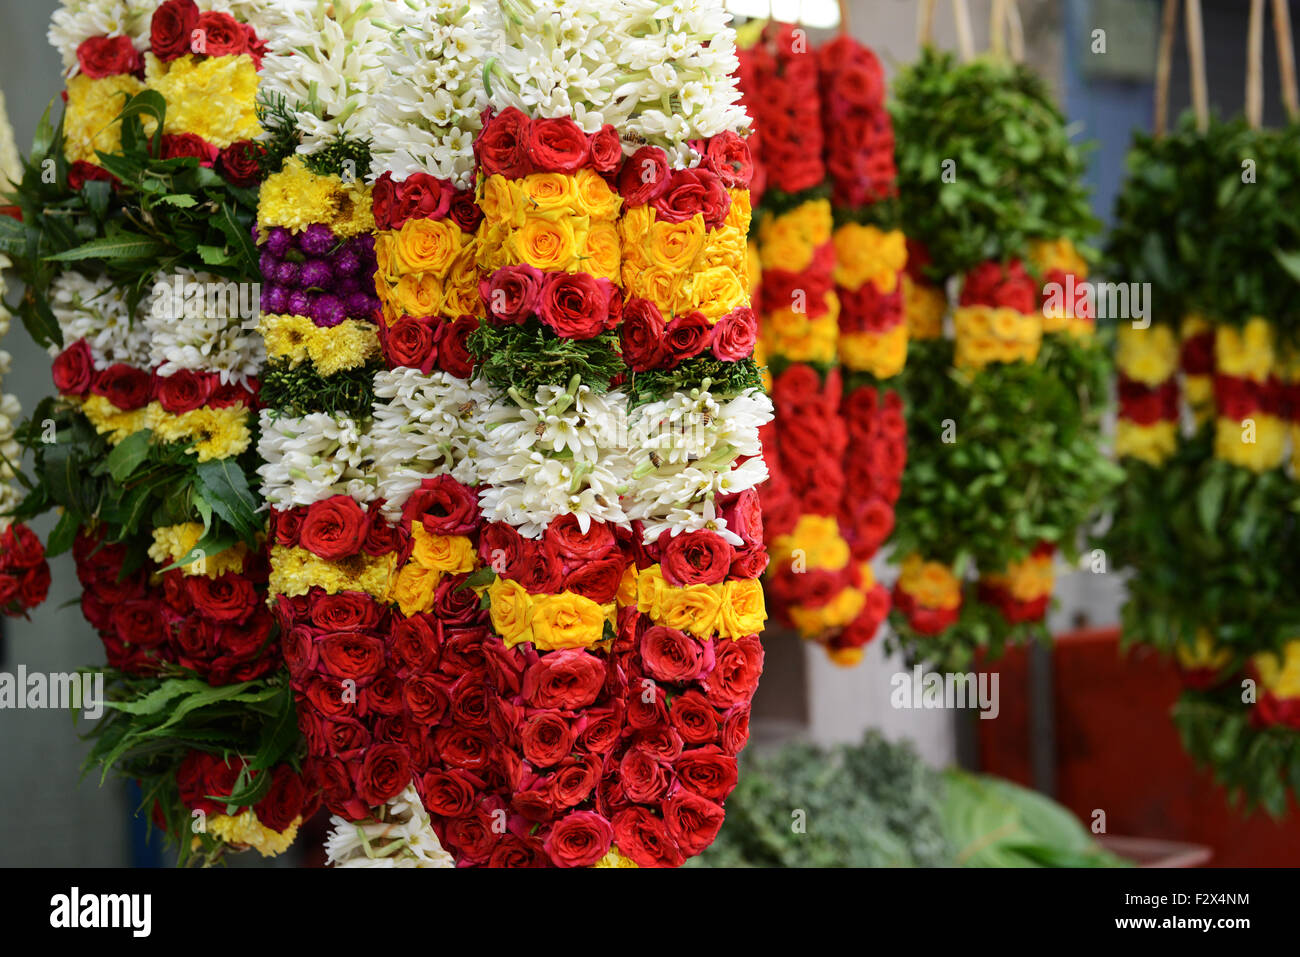 Flower garments sold near a hindu temple in Little India, Singapore. - Stock Image